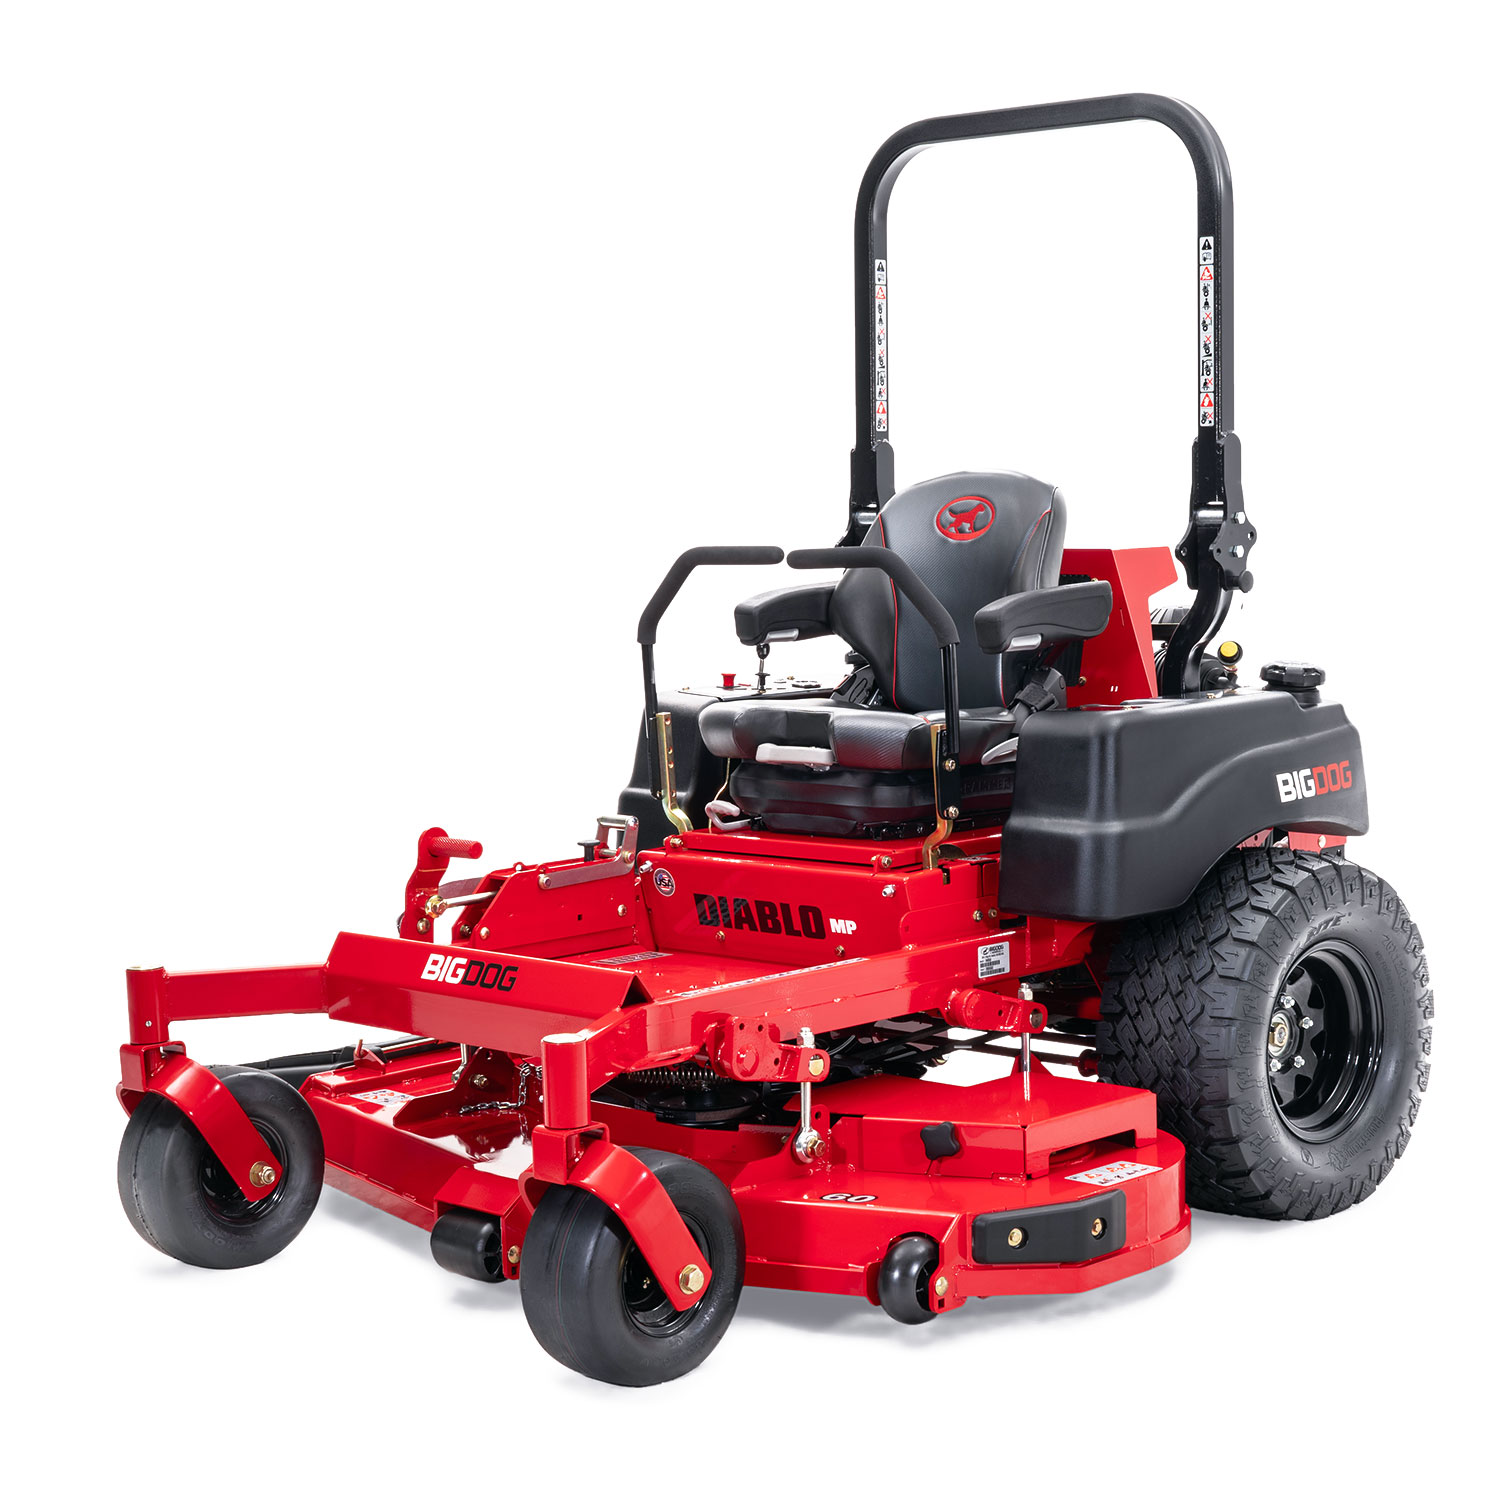 Image of the rear of a red riding mower